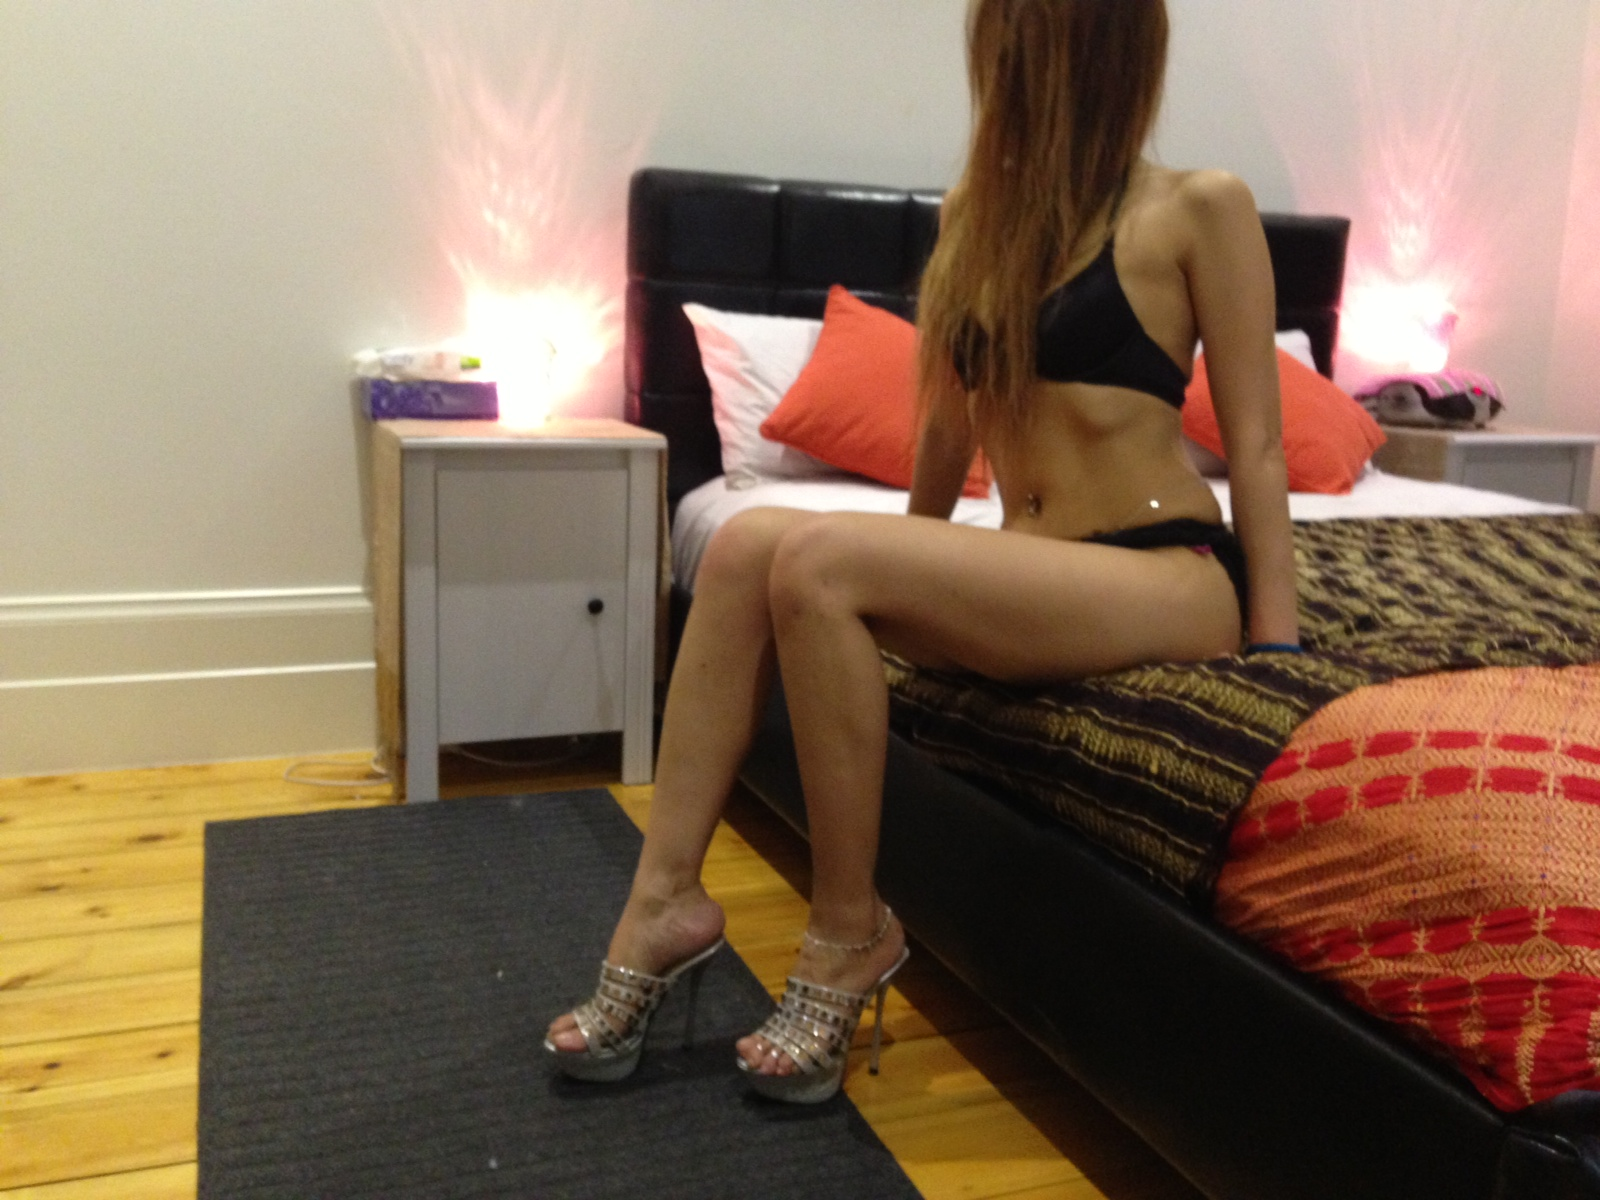 wetpussy private erotic massage melbourne